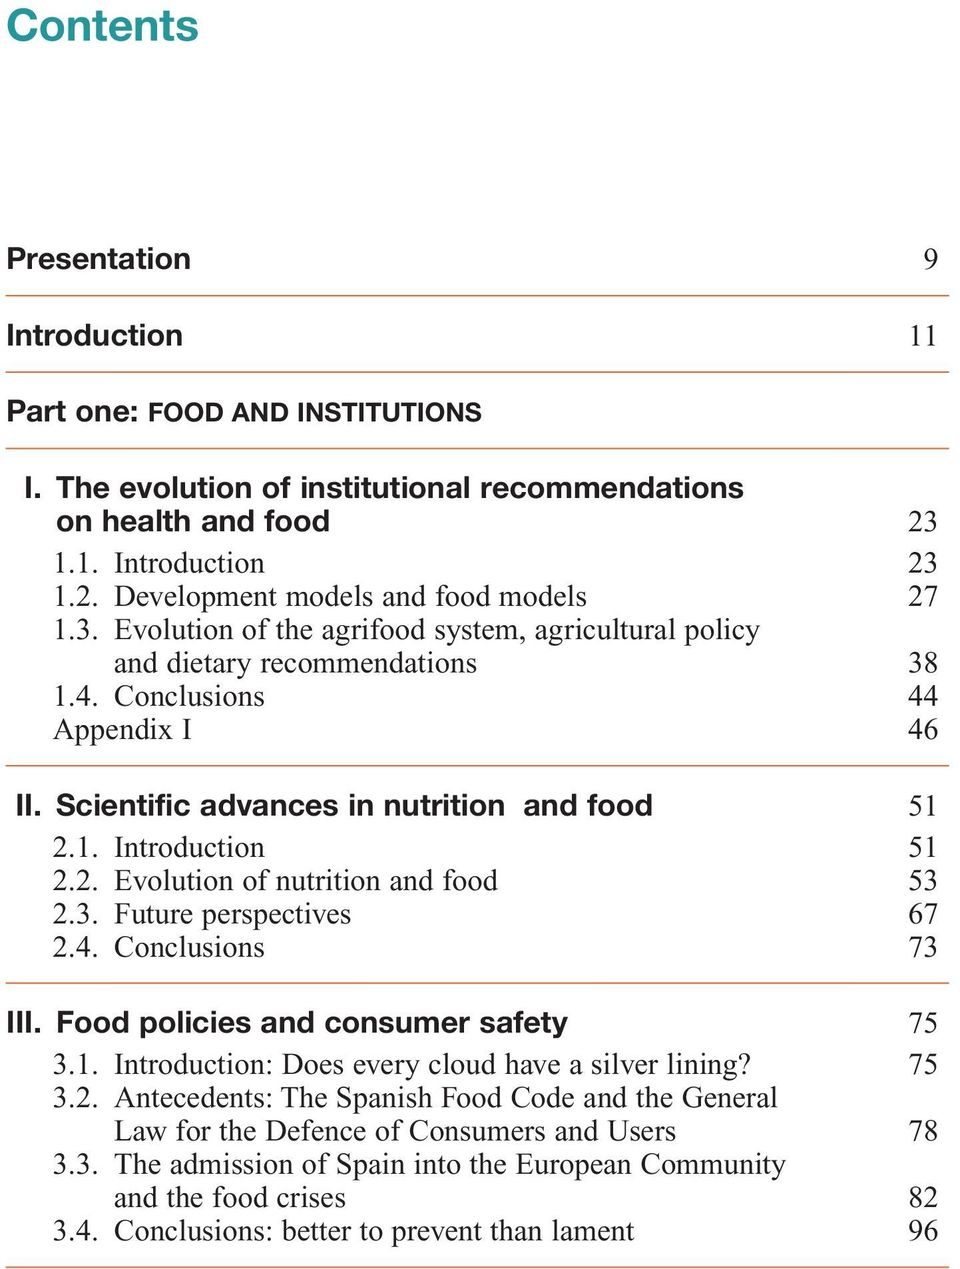 1. Introduction 51 2.2. Evolution of nutrition and food 53 2.3. Future perspectives 67 2.4. Conclusions 73 III. Food policies and consumer safety 75 3.1. Introduction: Does every cloud have a silver lining?